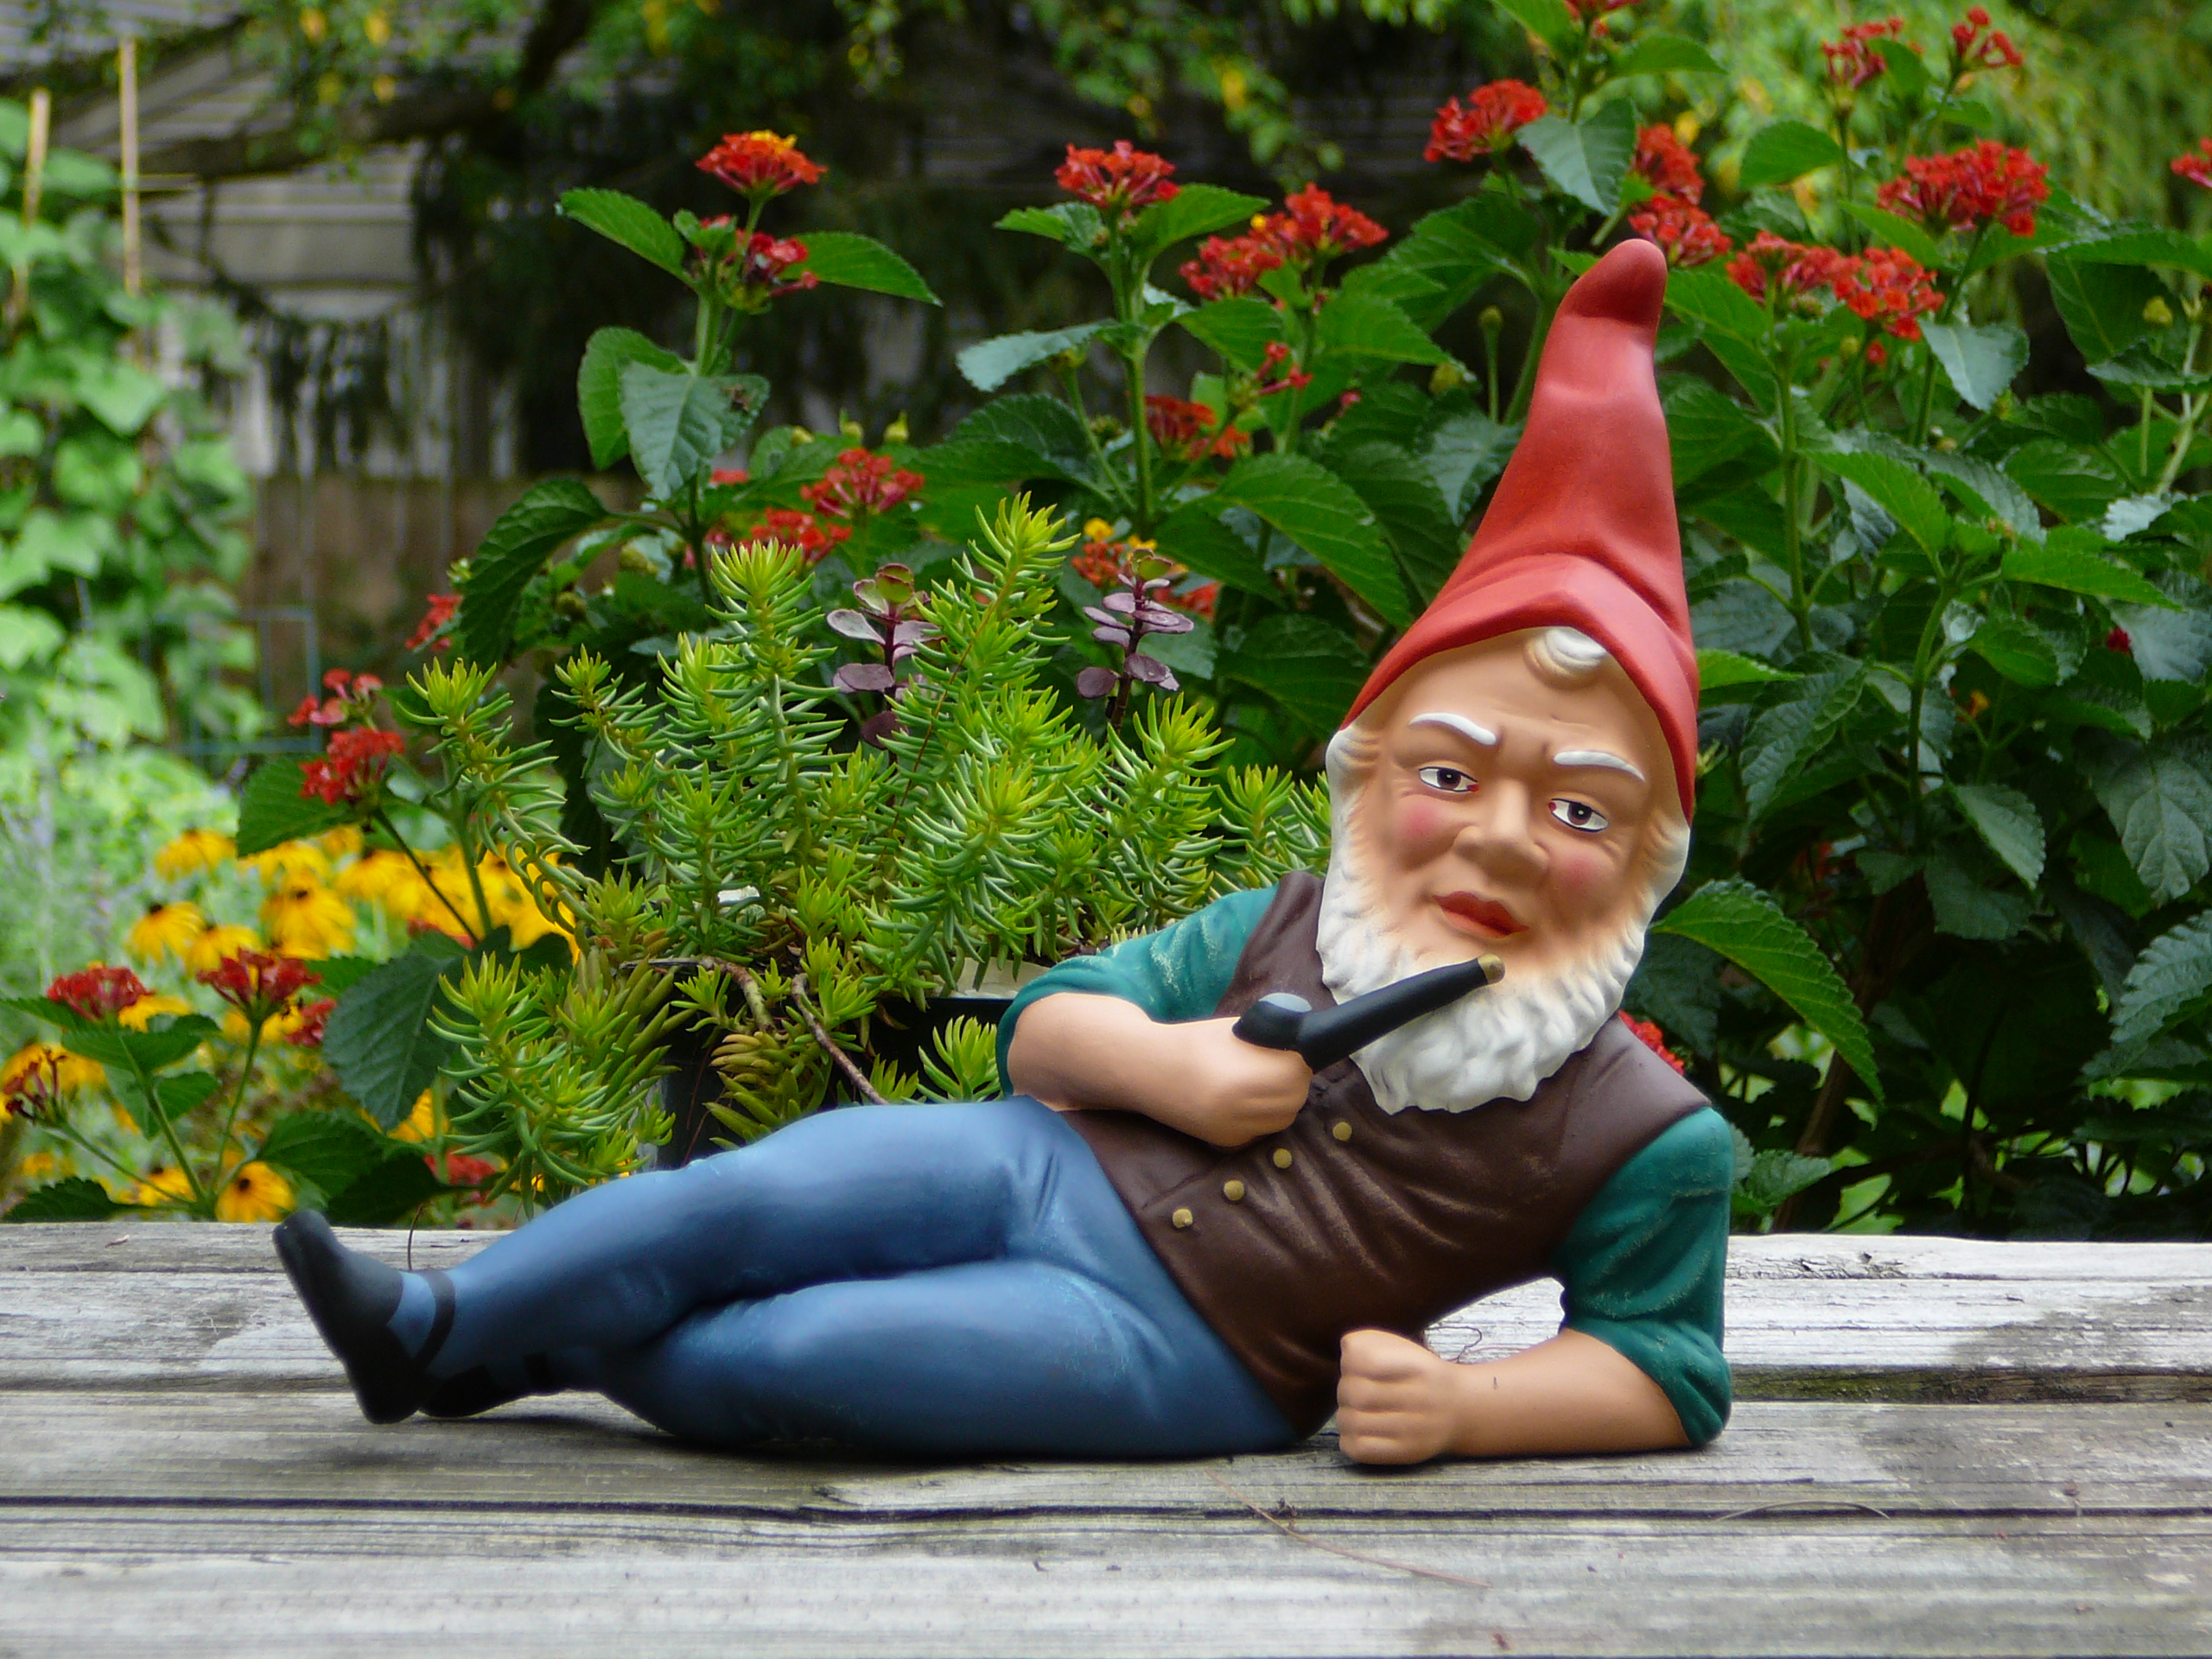 Yard gnome porn nackt toons